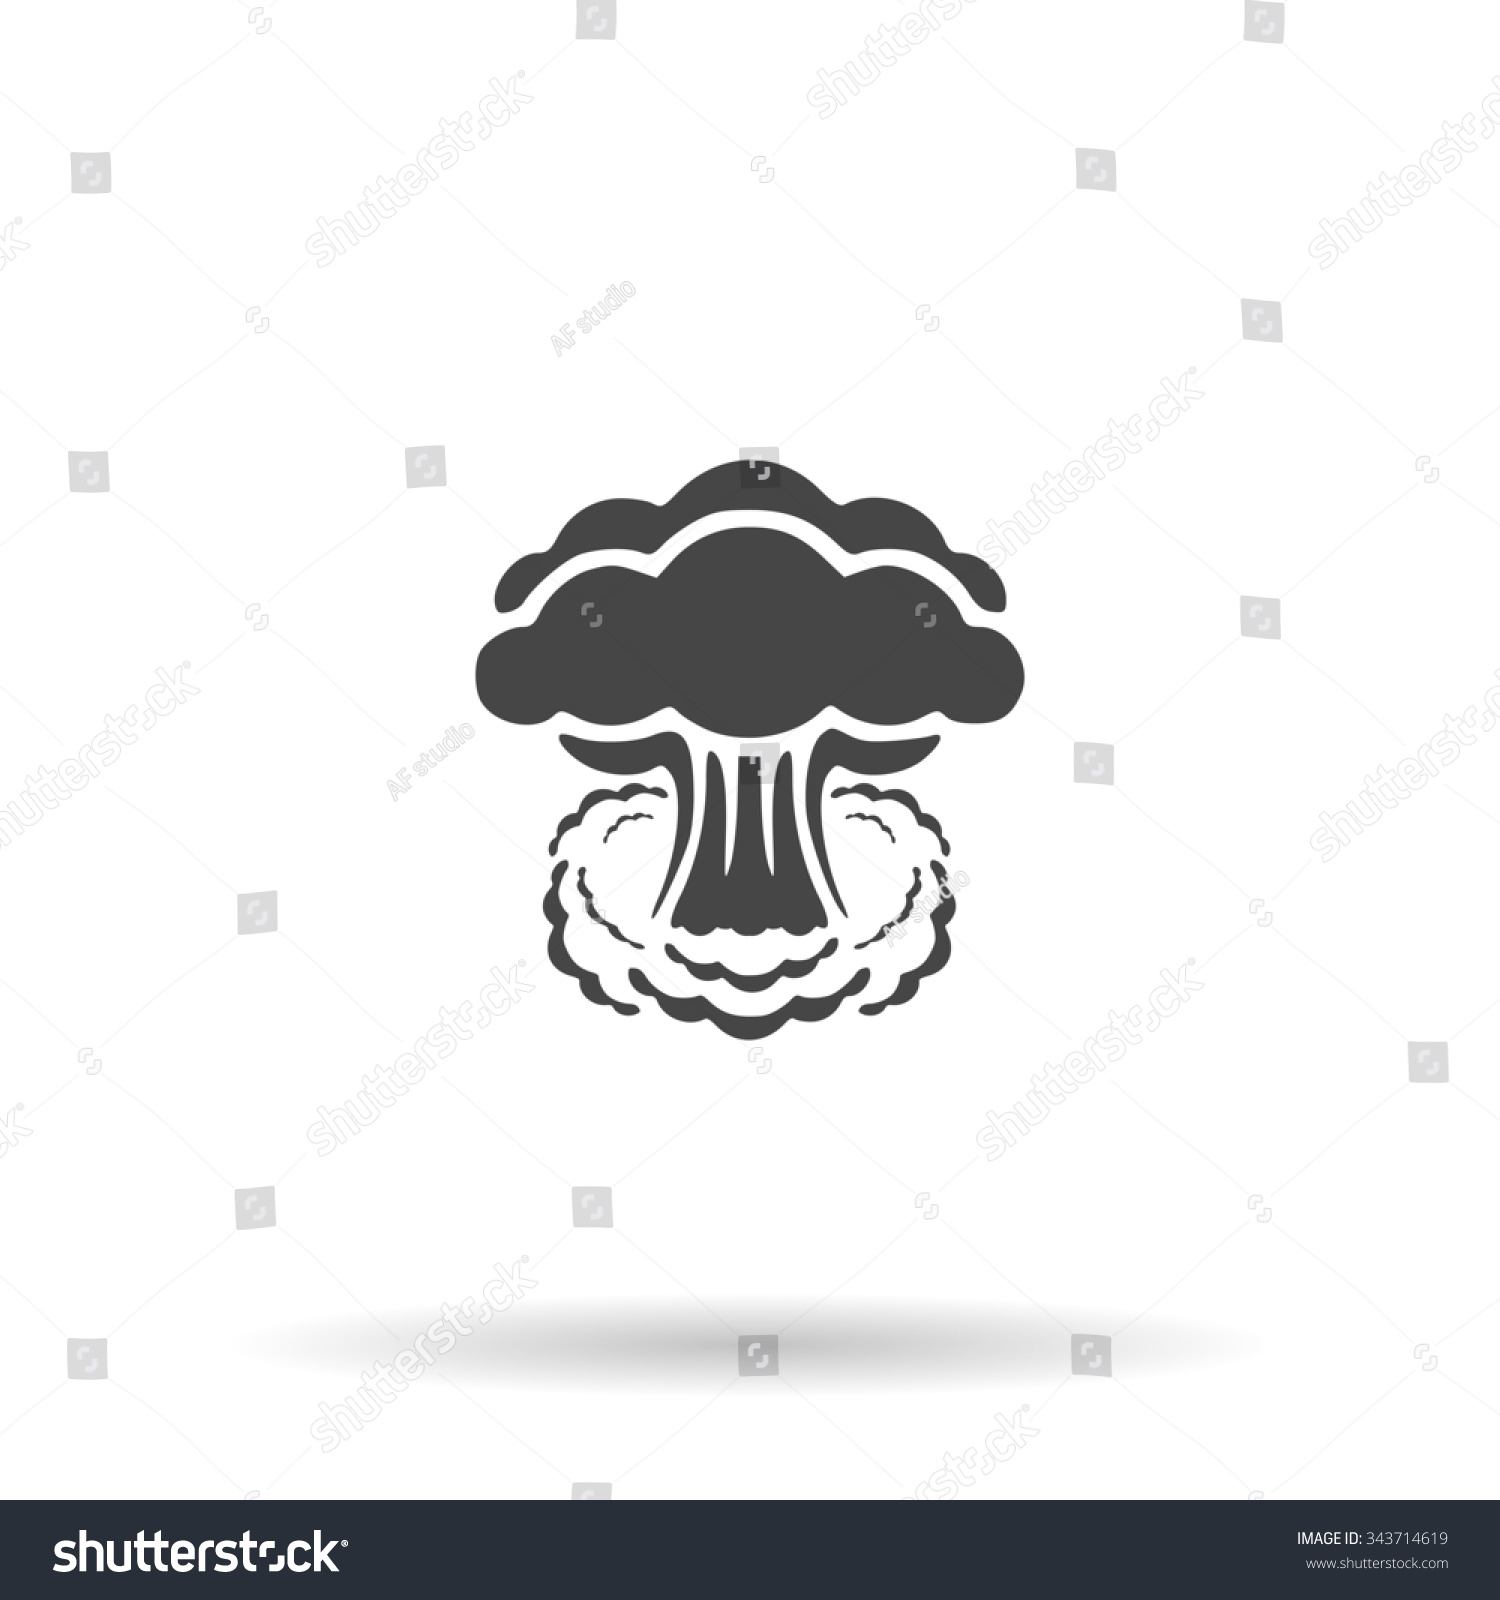 Mushroom Cloud Silhouette | www.imgkid.com - The Image Kid Has It!